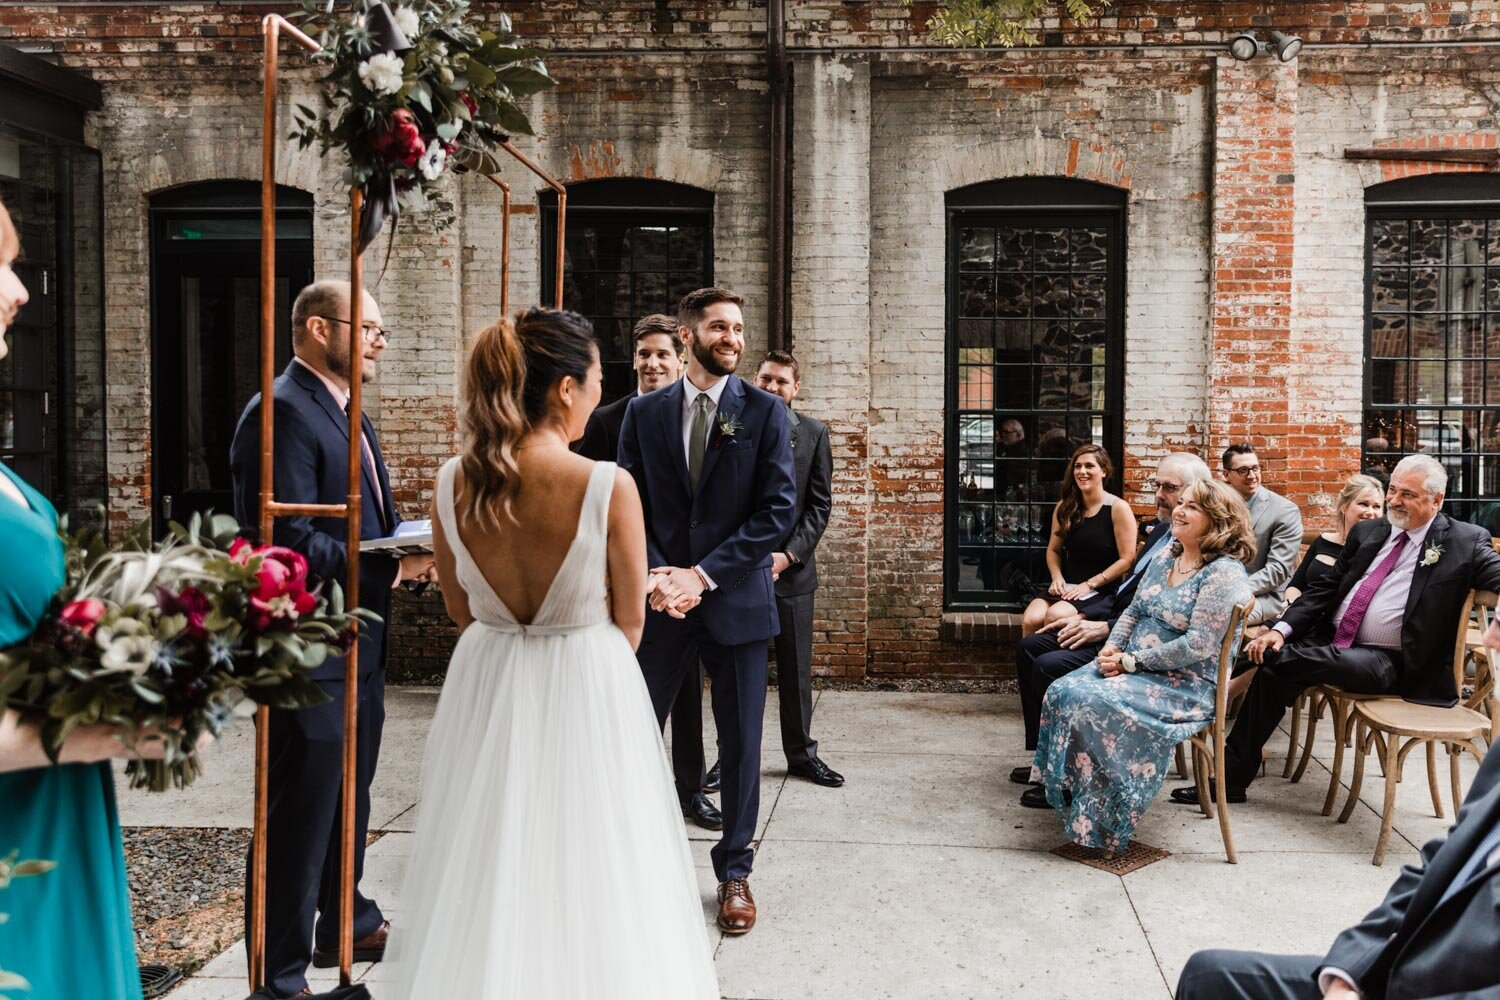 Mt Washington Mill Dye House industrial Baltimore wedding by Barbara O Photography-30.jpg